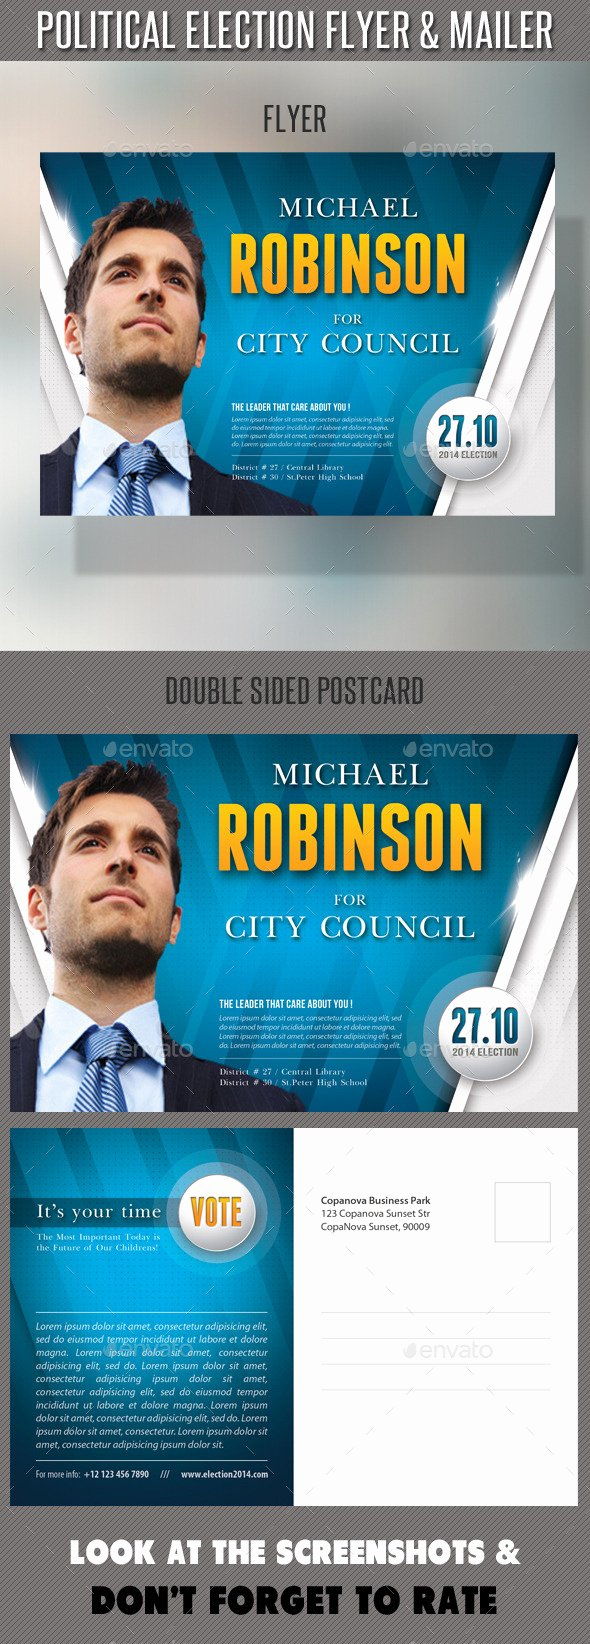 Political Flyer Template Free Beautiful Political Election Flyer and Mailer Template by Rapidgraf